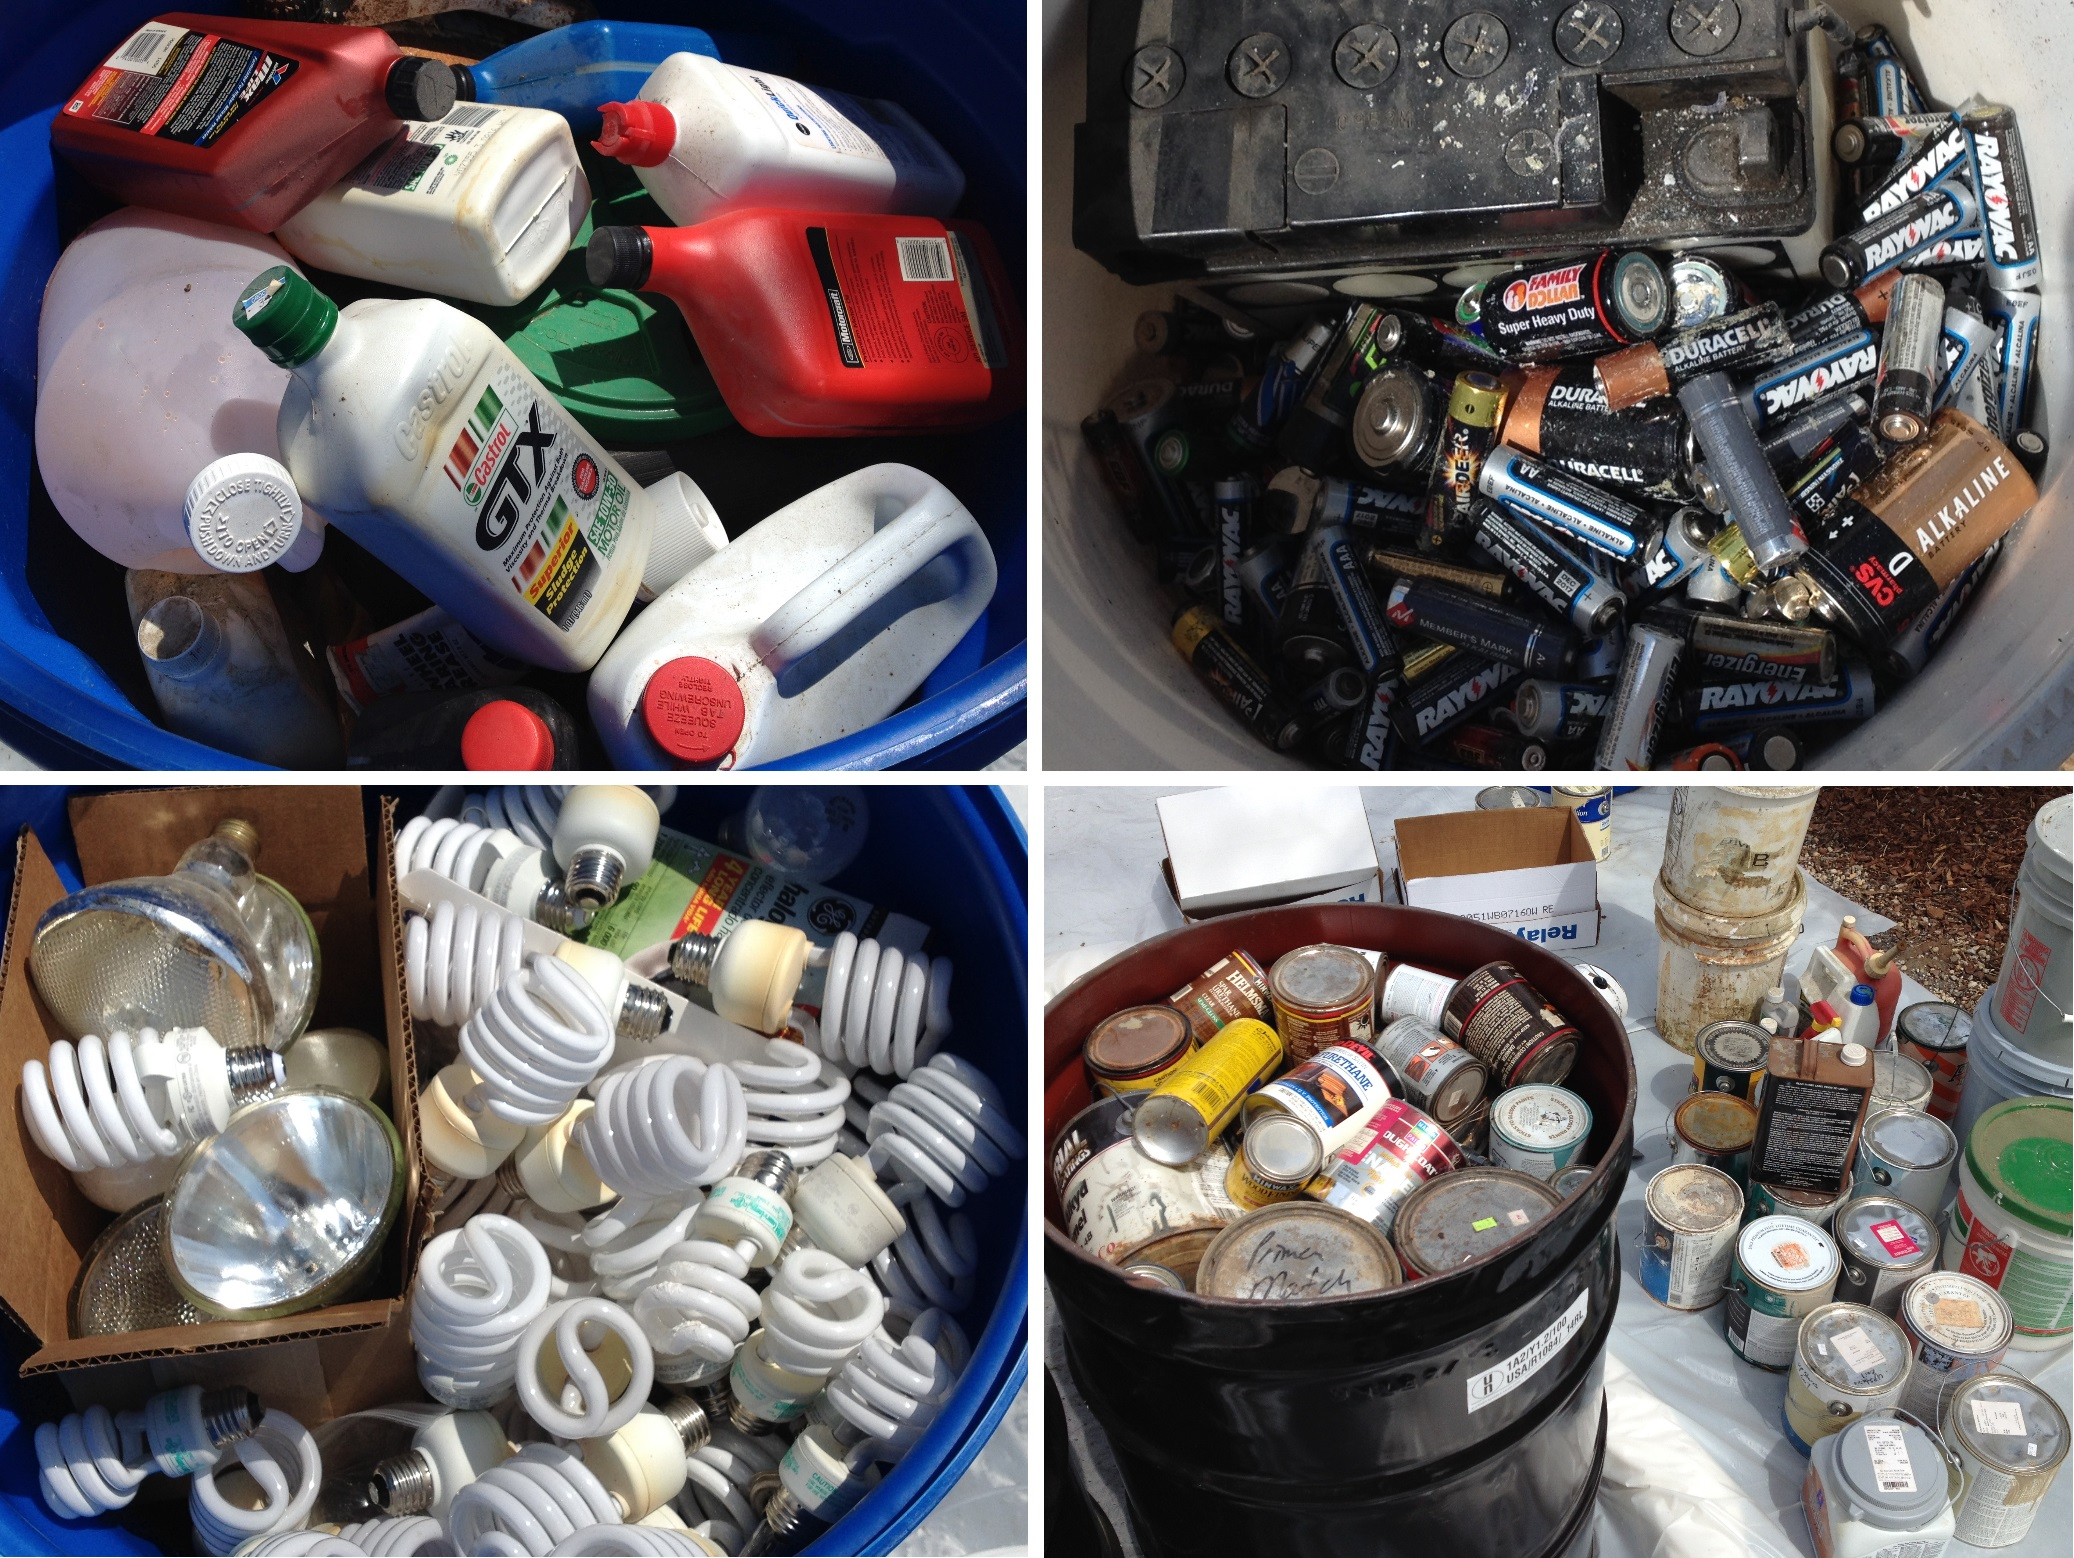 Government issues new rules on management of Hazardous Waste.